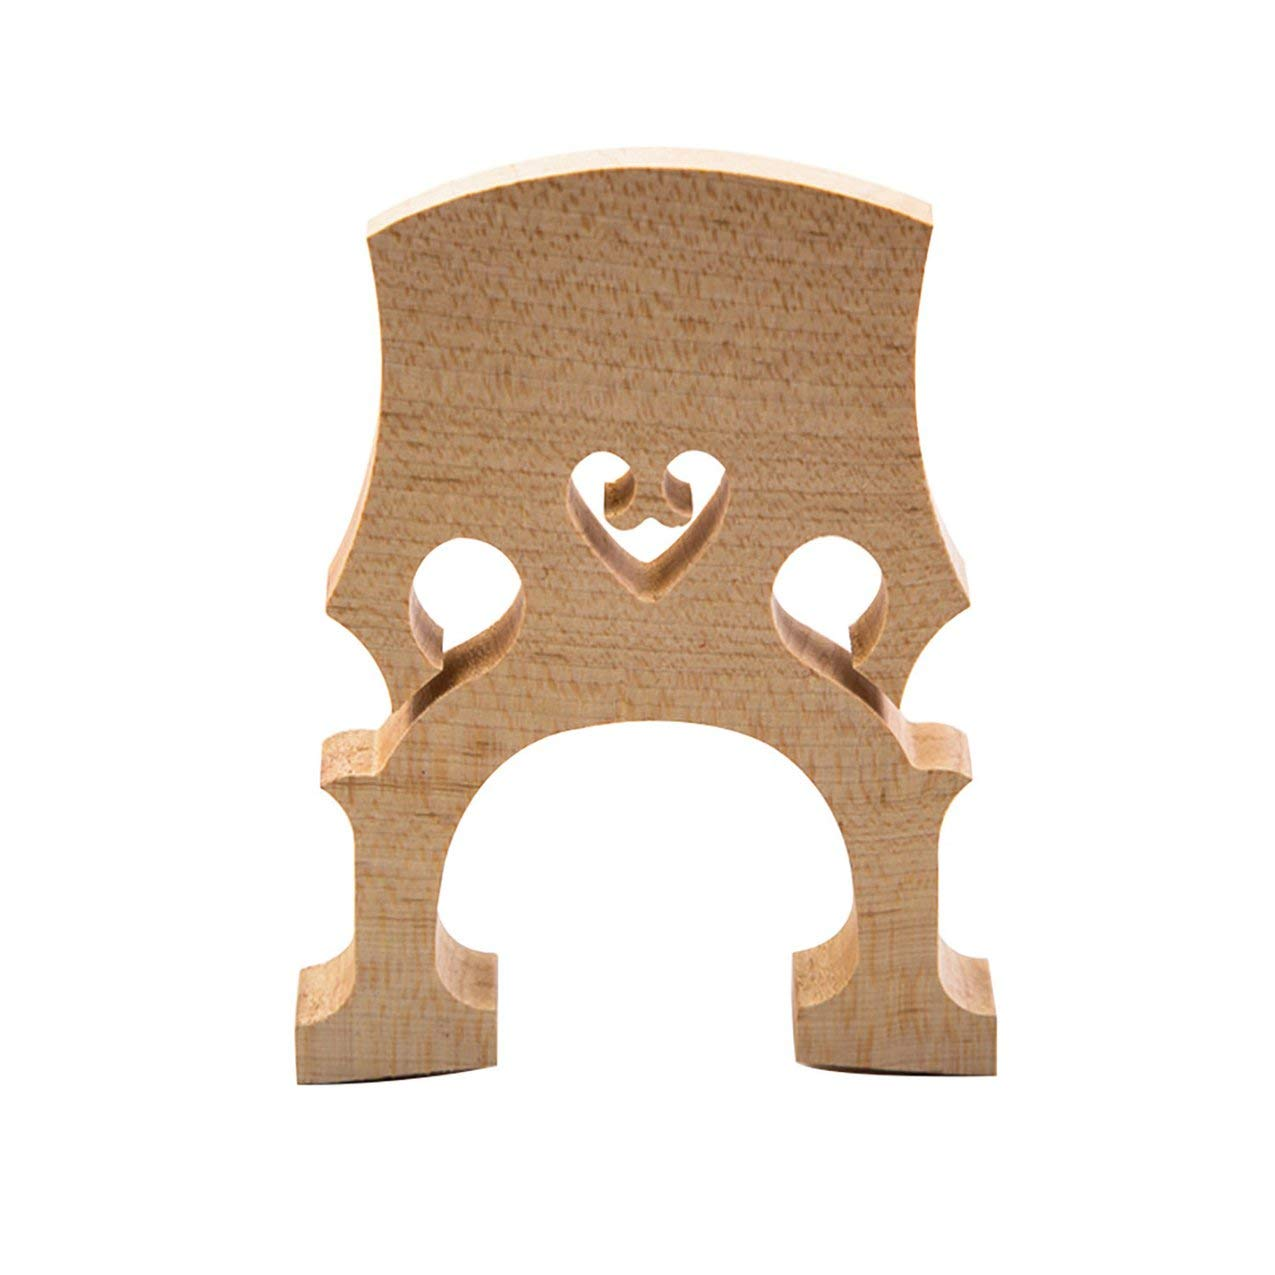 1 Pc Exquisite Cello Bridge 1/2 Madera de arce de calidad superior Accesorios para violonchelo profesional Redstrong